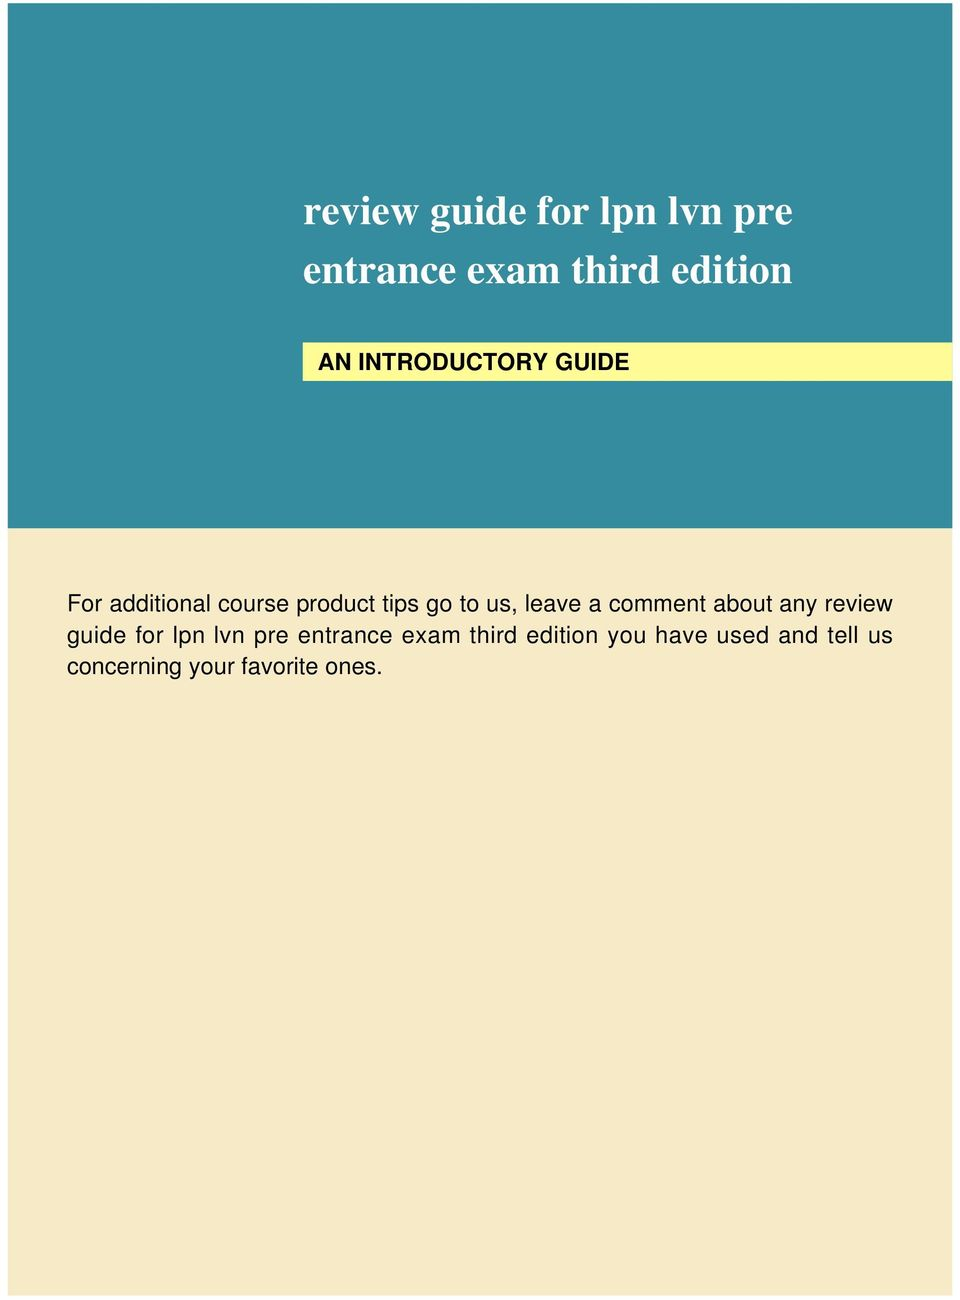 review guide for lpn lvn pre entrance exam third edition - PDF